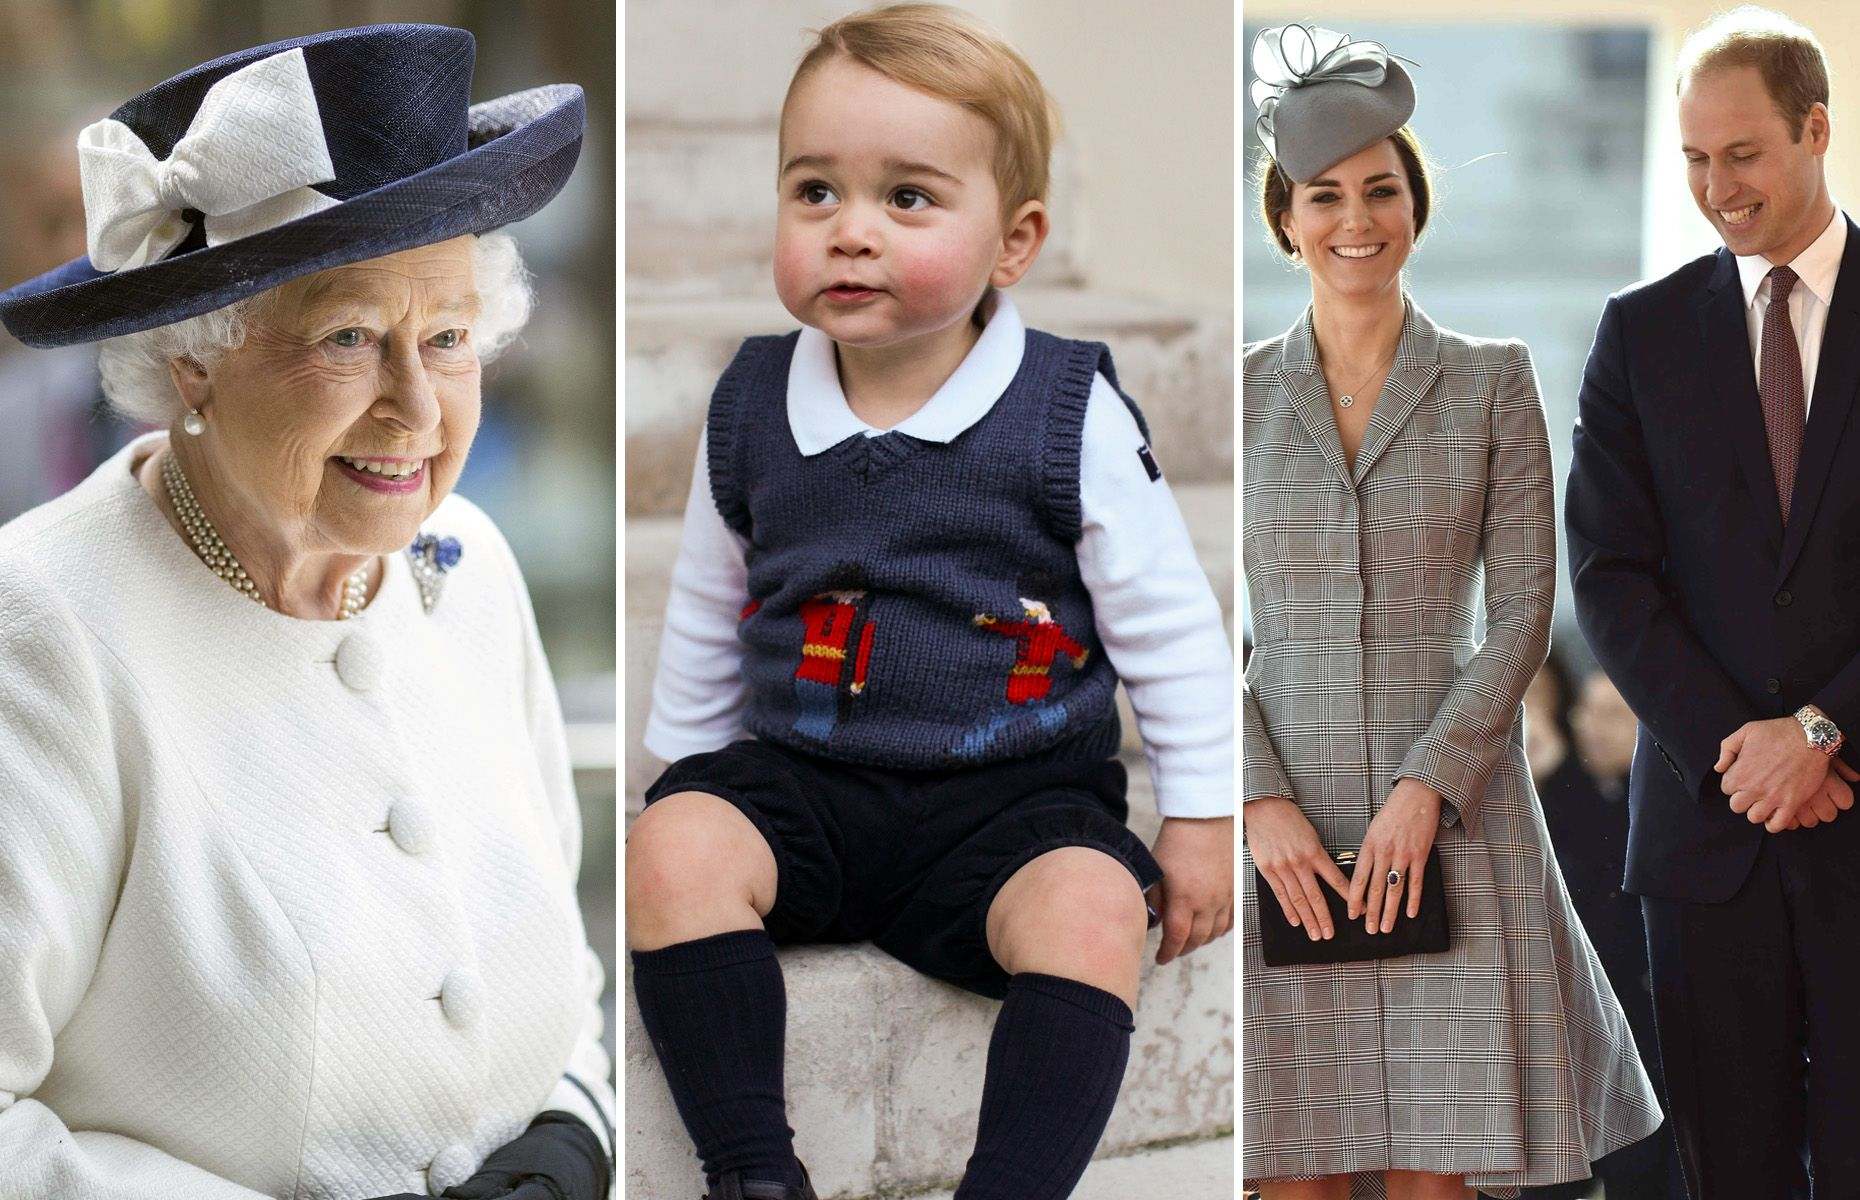 Stylish Families Around the World | British Royal Family | The British royal family was voted among the top stylish families of the world in a poll conducted last year. The Duchess of Cambridge is one of the world's most high-profile style icons and a public appearance by Kate is often followed by her outfit choices selling out online